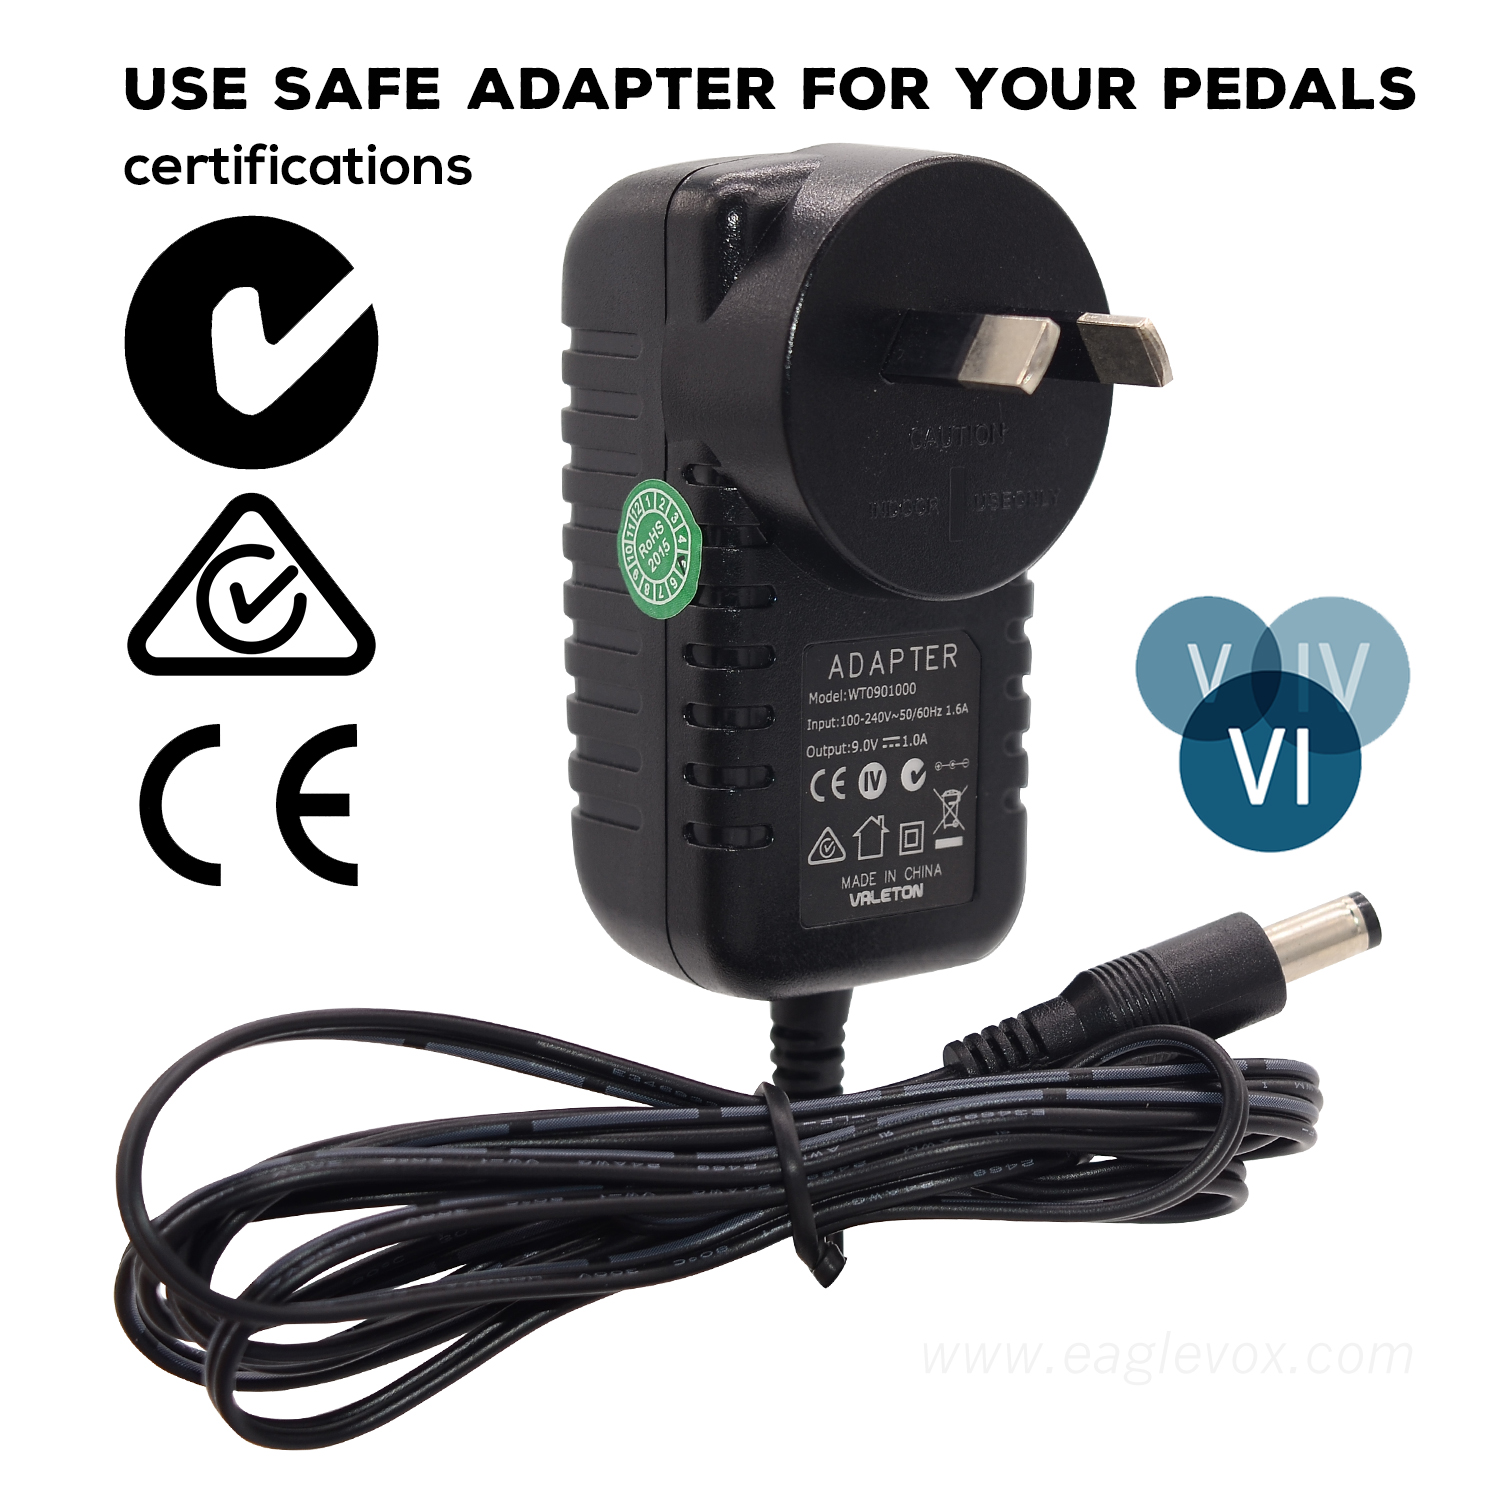 guitar effects 9 volt ac power adapter australia au plugfor pedals all safety certification in. Black Bedroom Furniture Sets. Home Design Ideas